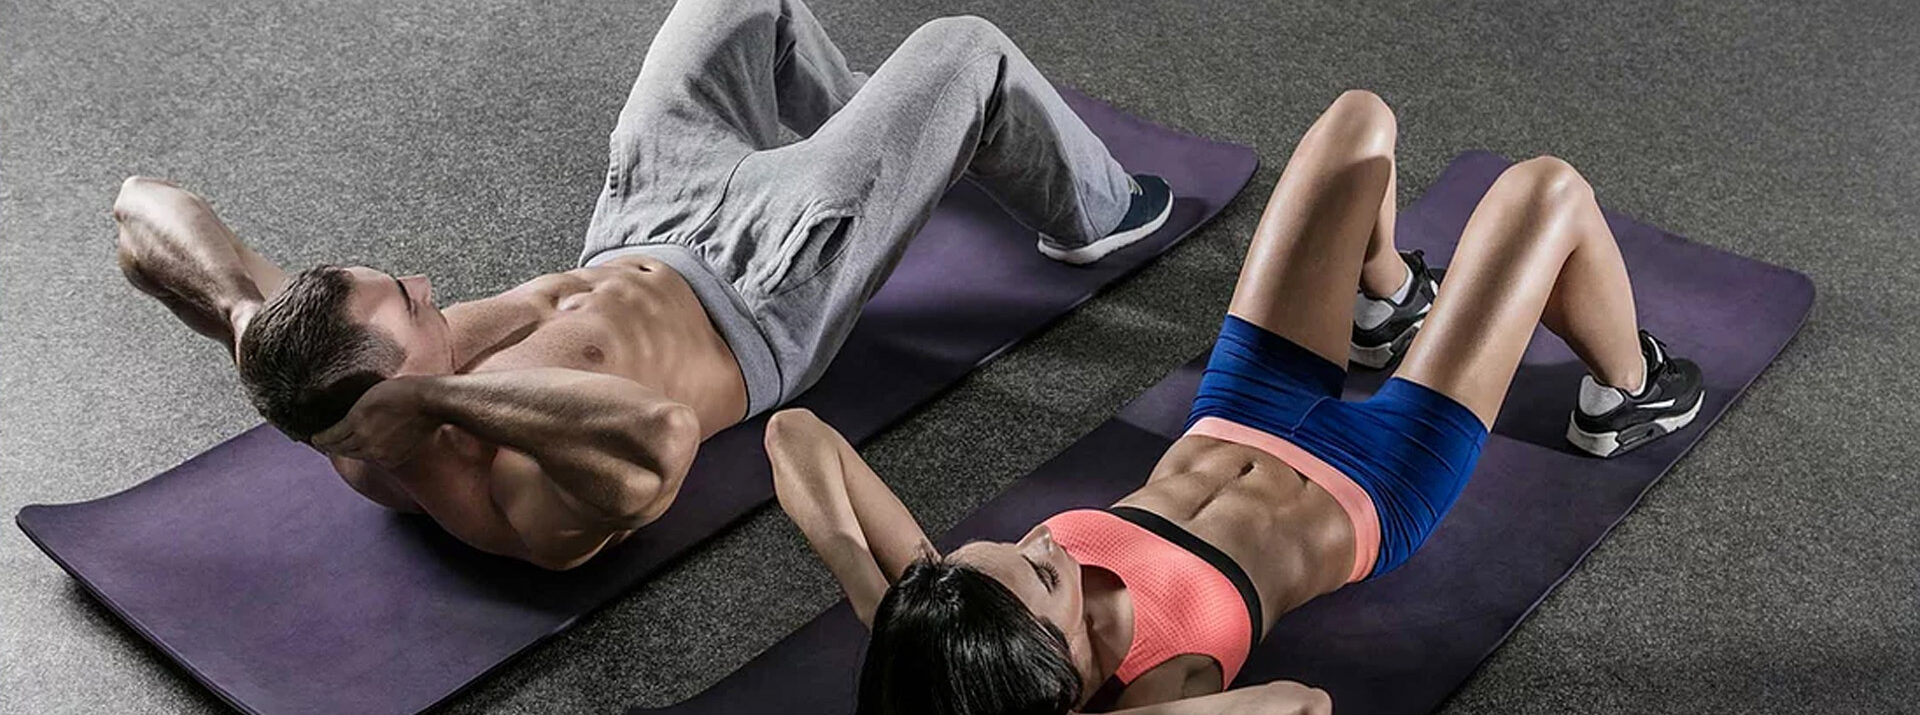 MANTAIN-YOUR-FITNESS-AND-wellness slider image